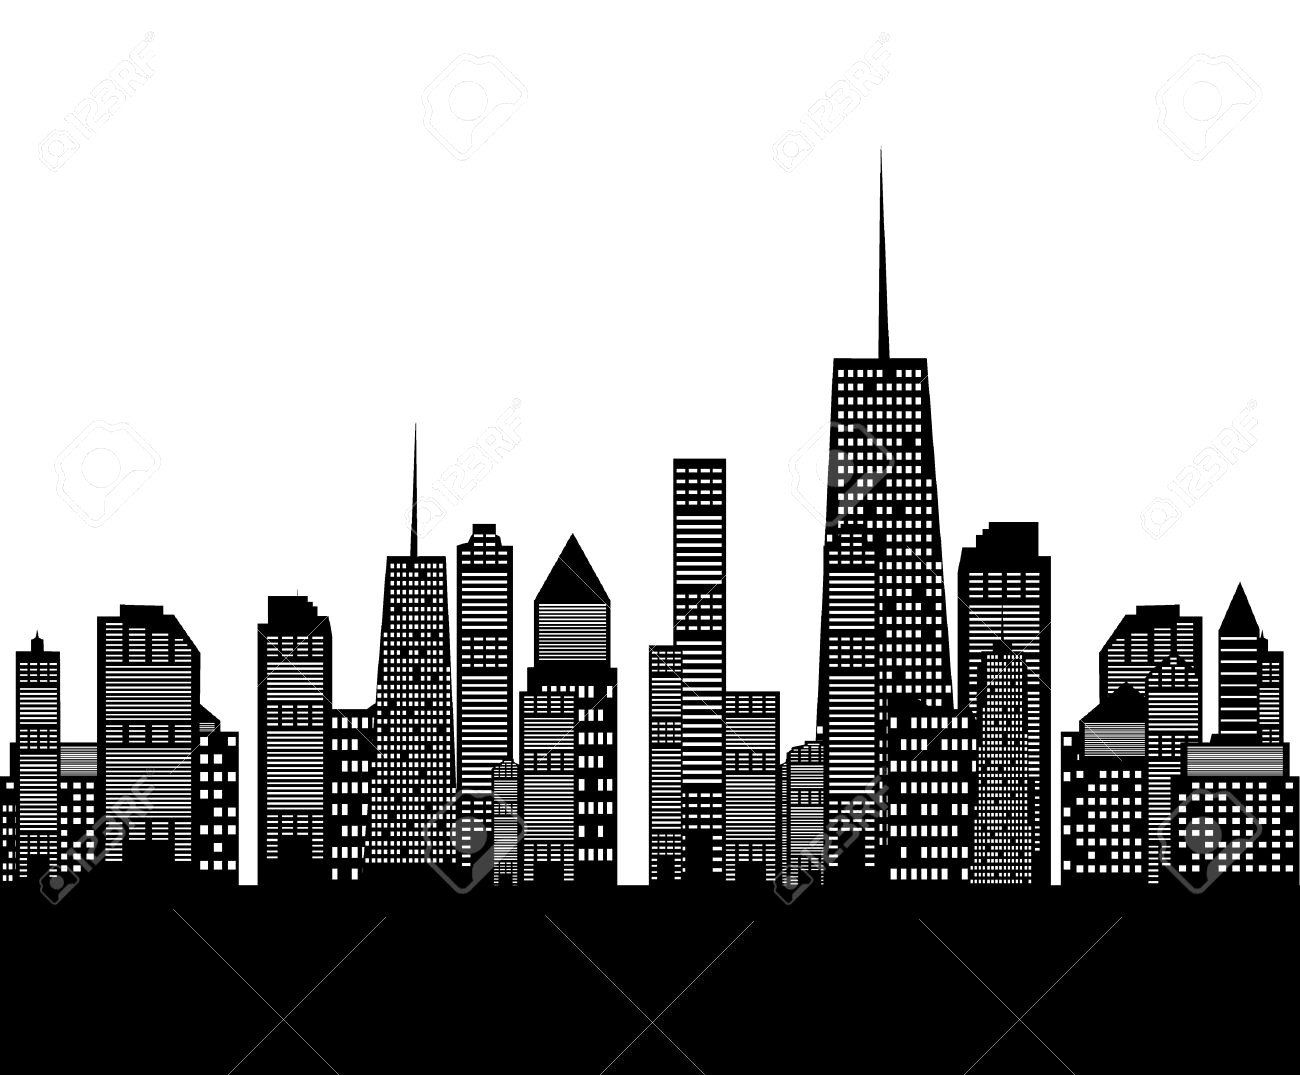 1300x1075 Illustration Of Cities Silhouette Royalty Free Cliparts Vectors